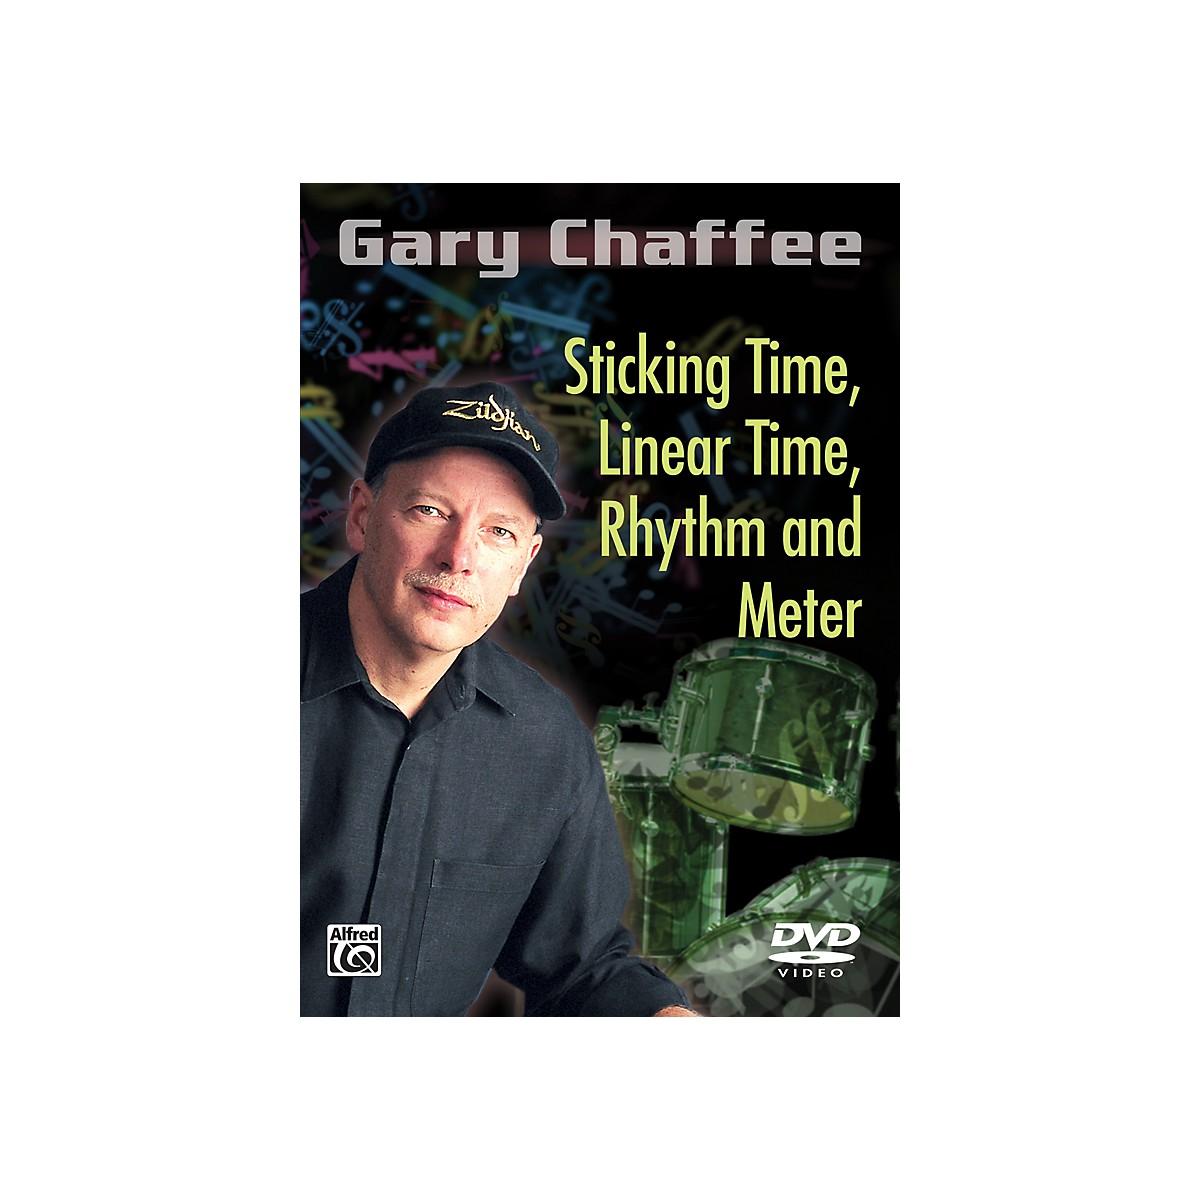 Alfred Gary Chaffee - Sticking Time, Linear Time, Rhythm and Meter DVD